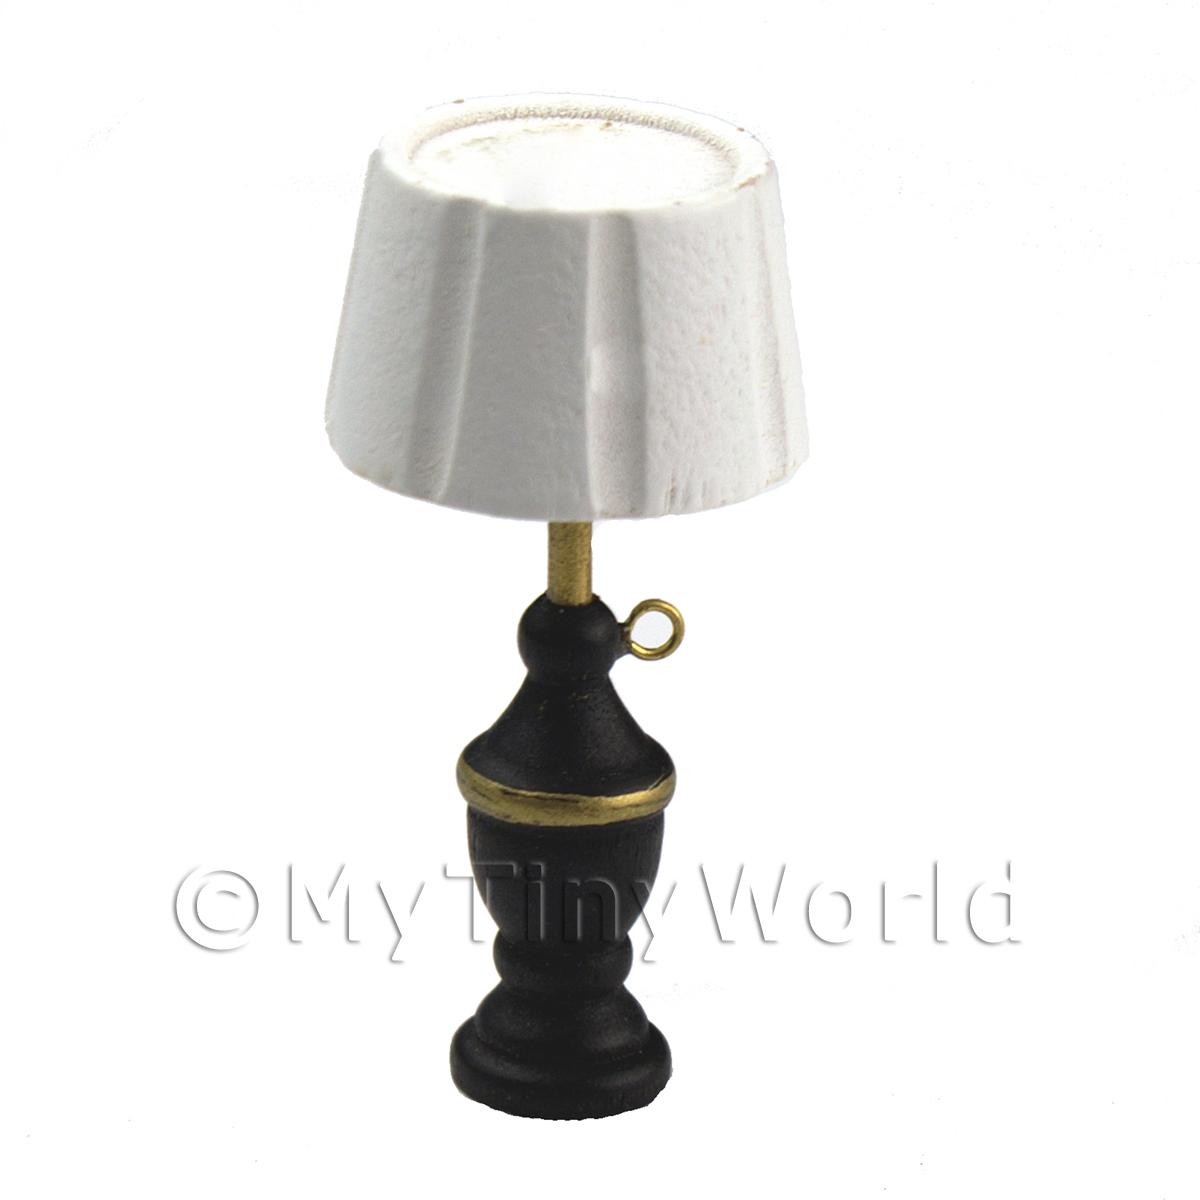 Dolls House Miniature Table Lamp